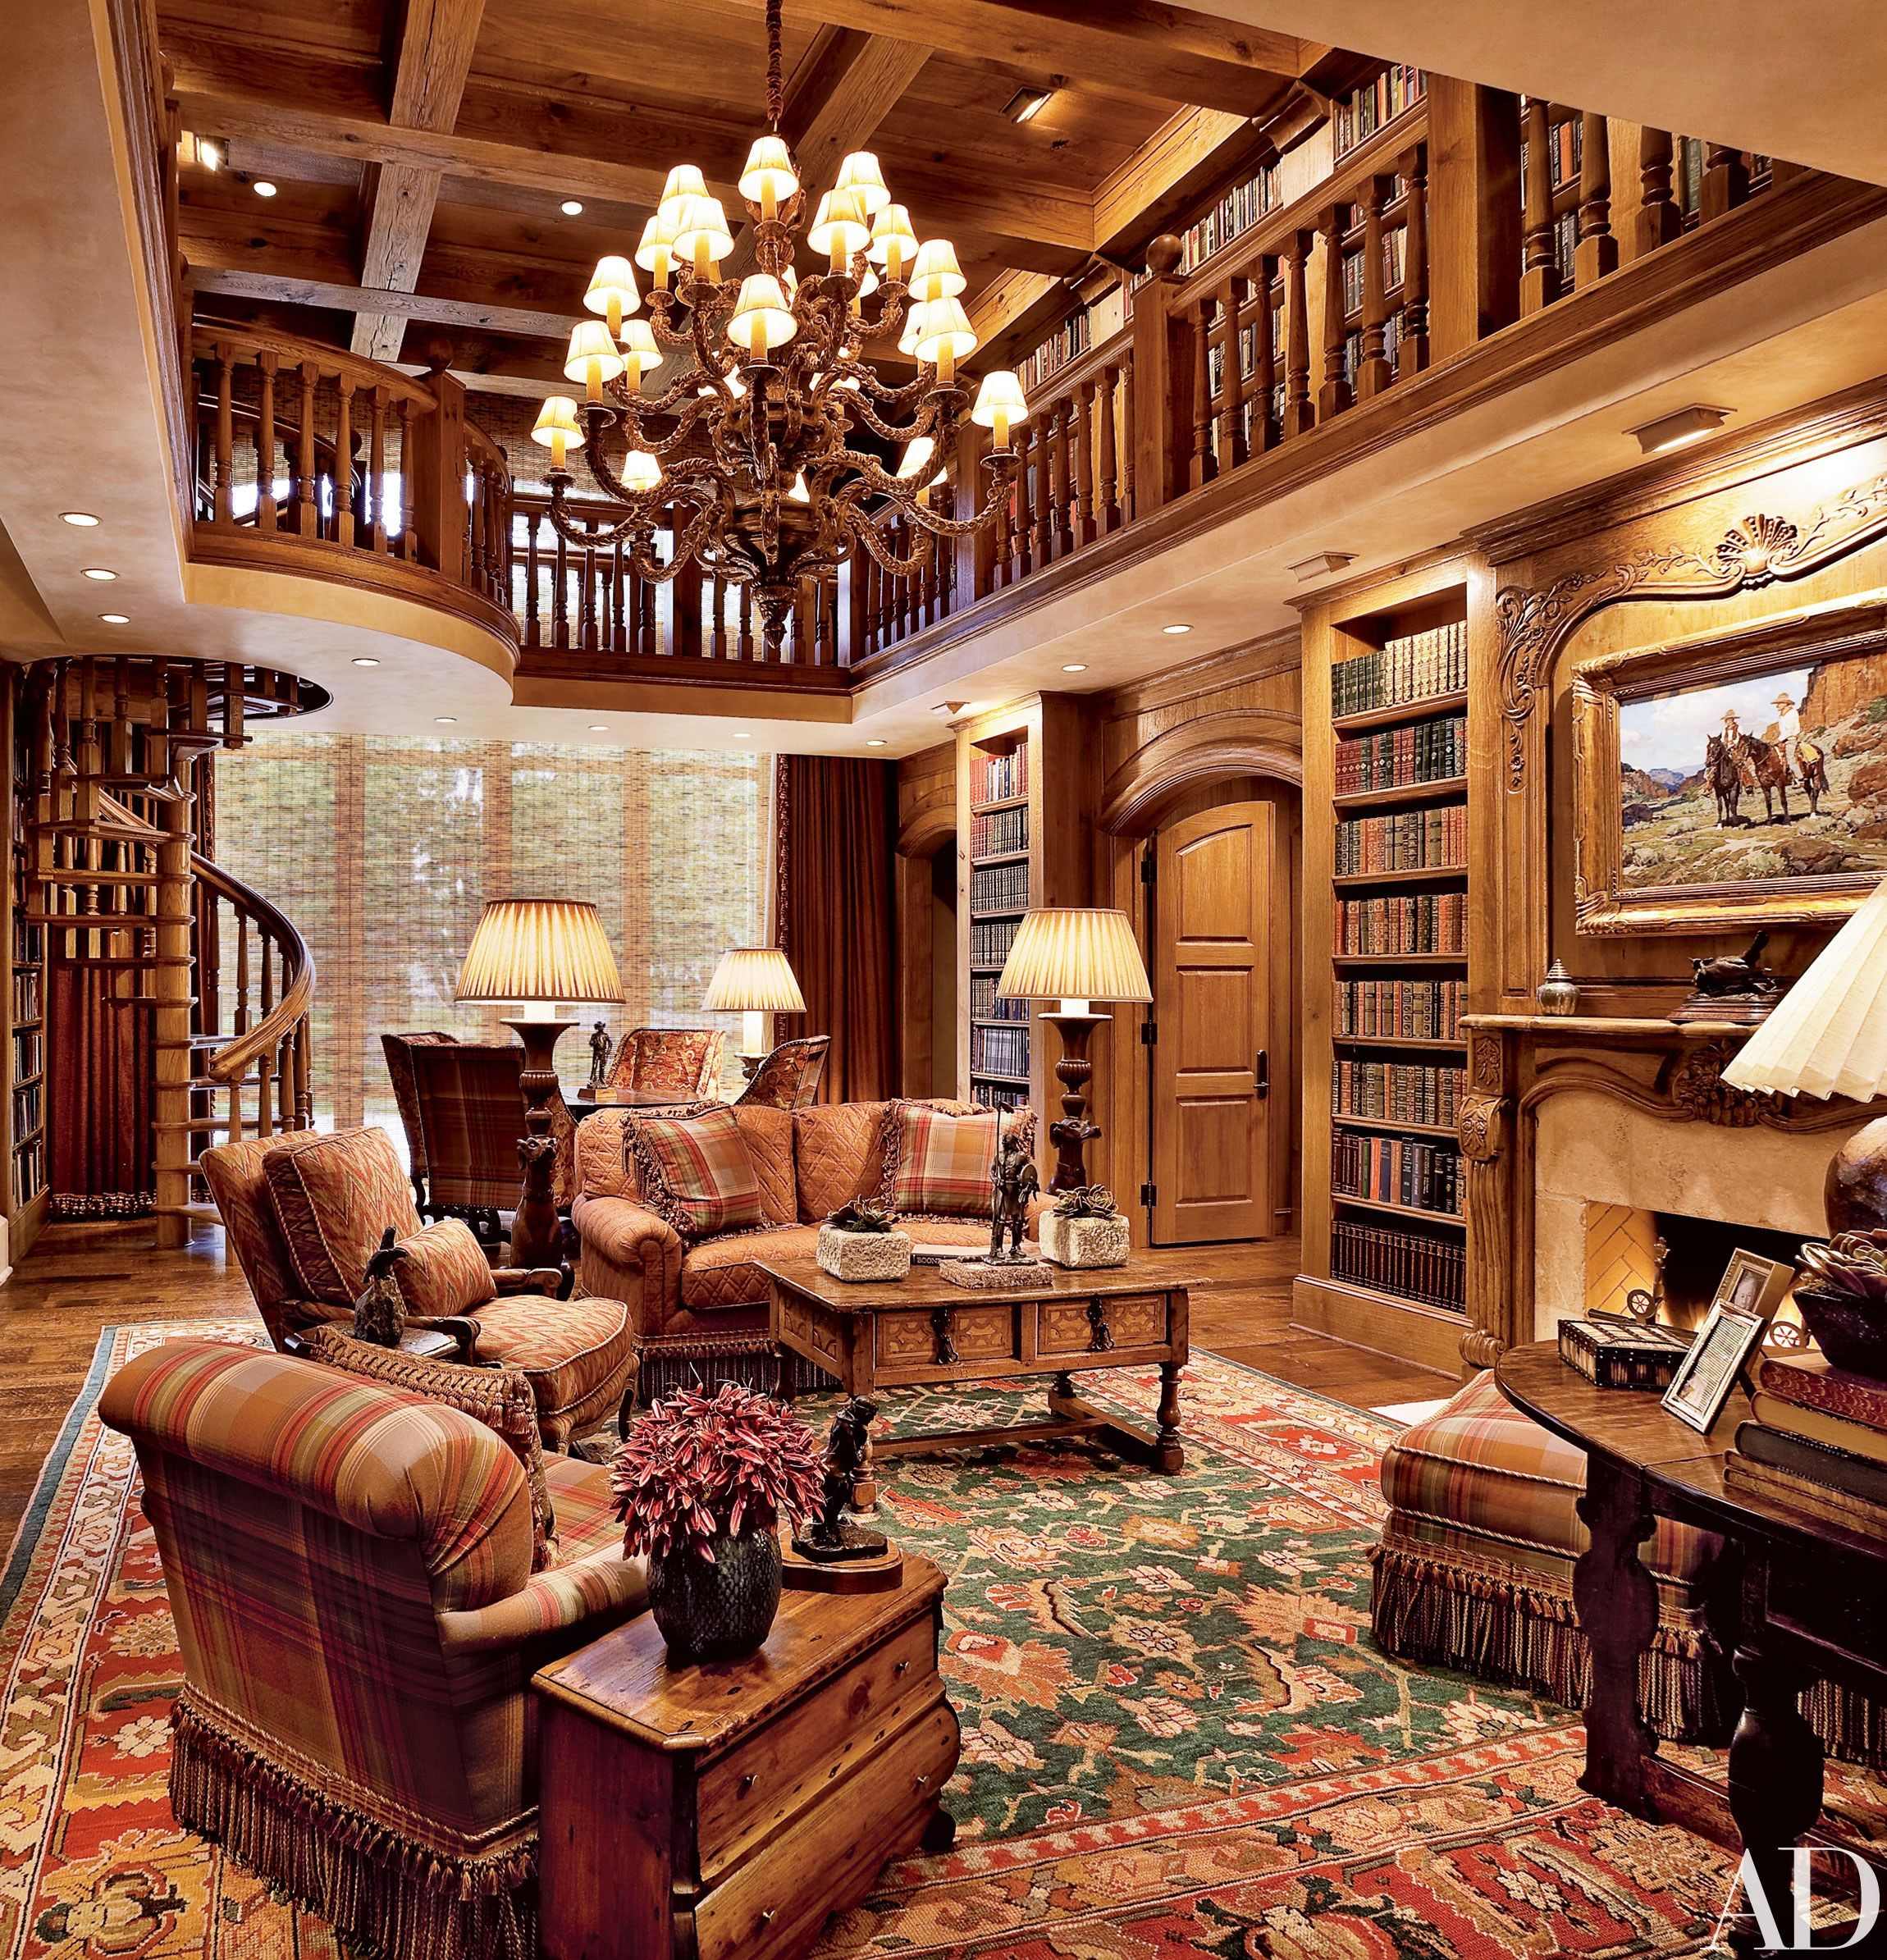 Ranch For Sale In Dallas Tx >> T. Boone Pickens's Mesa Vista Ranch in Texas | Home library design, Home library rooms, Home ...